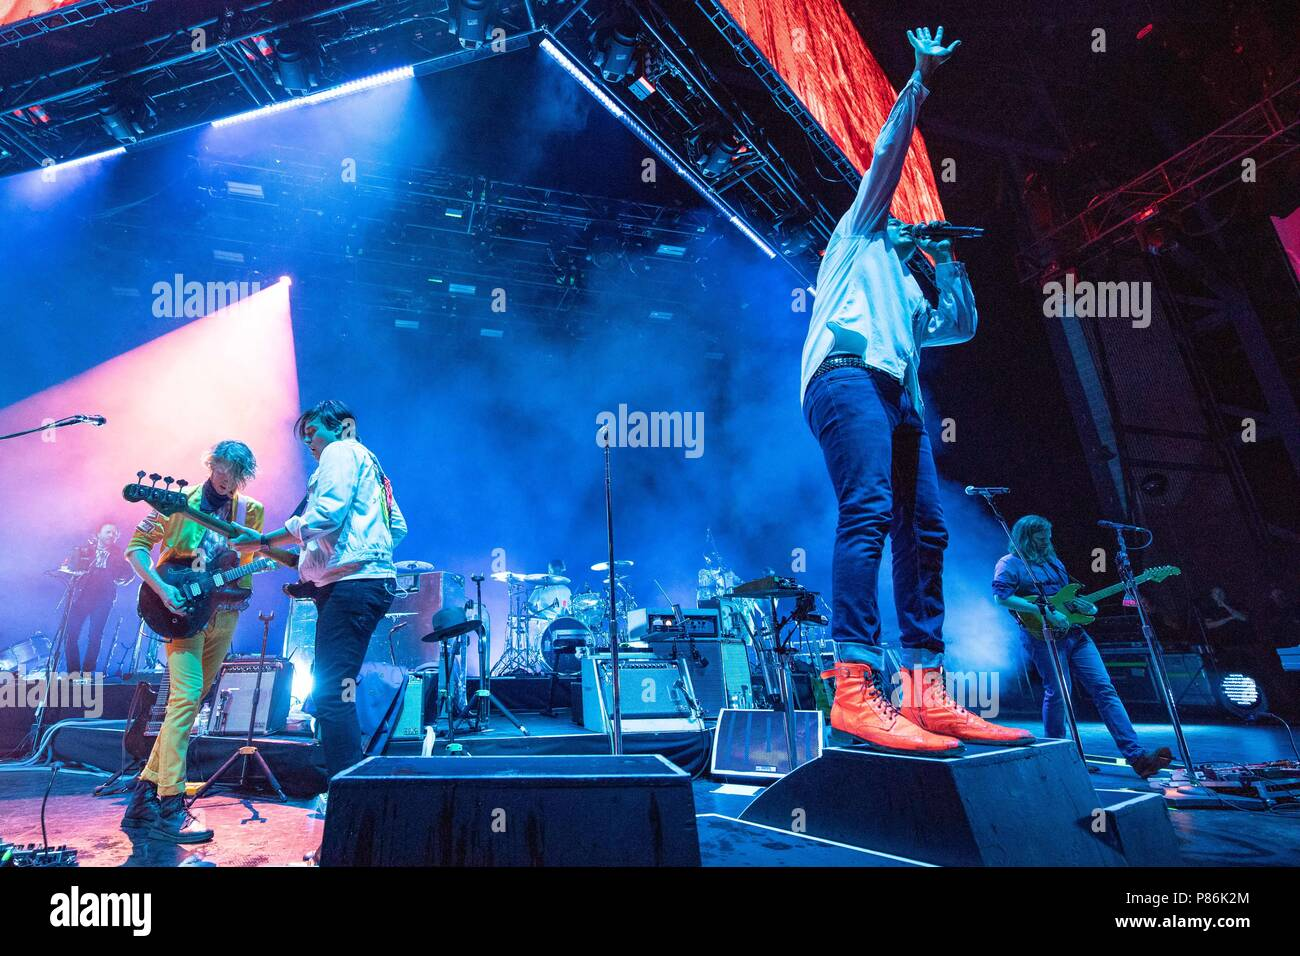 Milwaukee, Wisconsin, USA. 8th July, 2018. RICHARD REED PARRY, WILLIAM BUTLER, WIN BUTLER and TIM KINGSBURY of Arcade Fire during Summerfest Music Festival at Henry Maier Festival Park in Milwaukee, Wisconsin Credit: Daniel DeSlover/ZUMA Wire/Alamy Live News - Stock Image